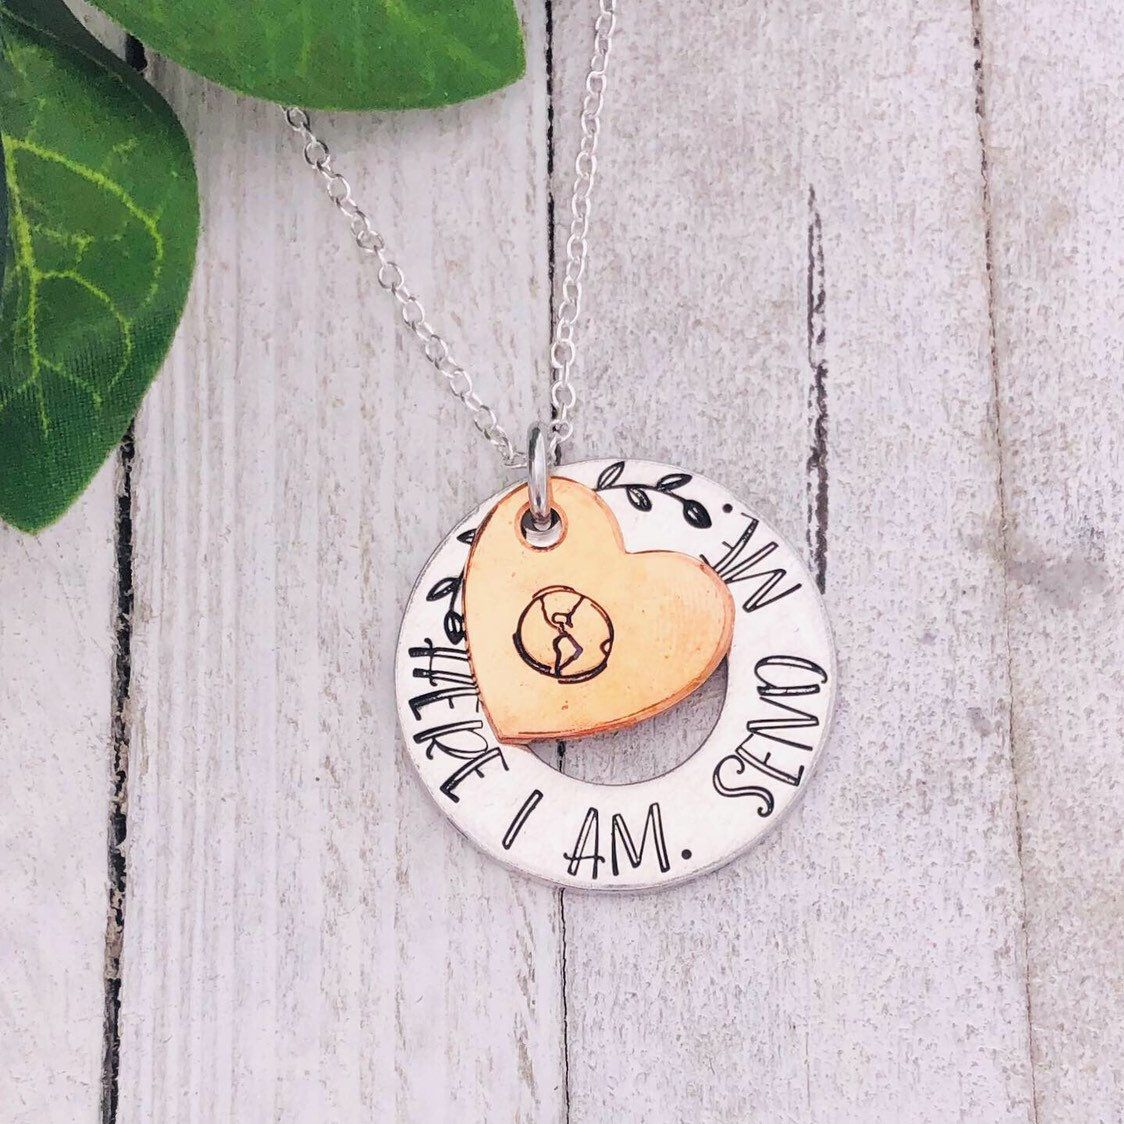 LDS Jewelry Hand Stamped by Eight9 Designs Send me Mixed Metals Missionary Necklace Isaiah 6:8 Scripture Here am I